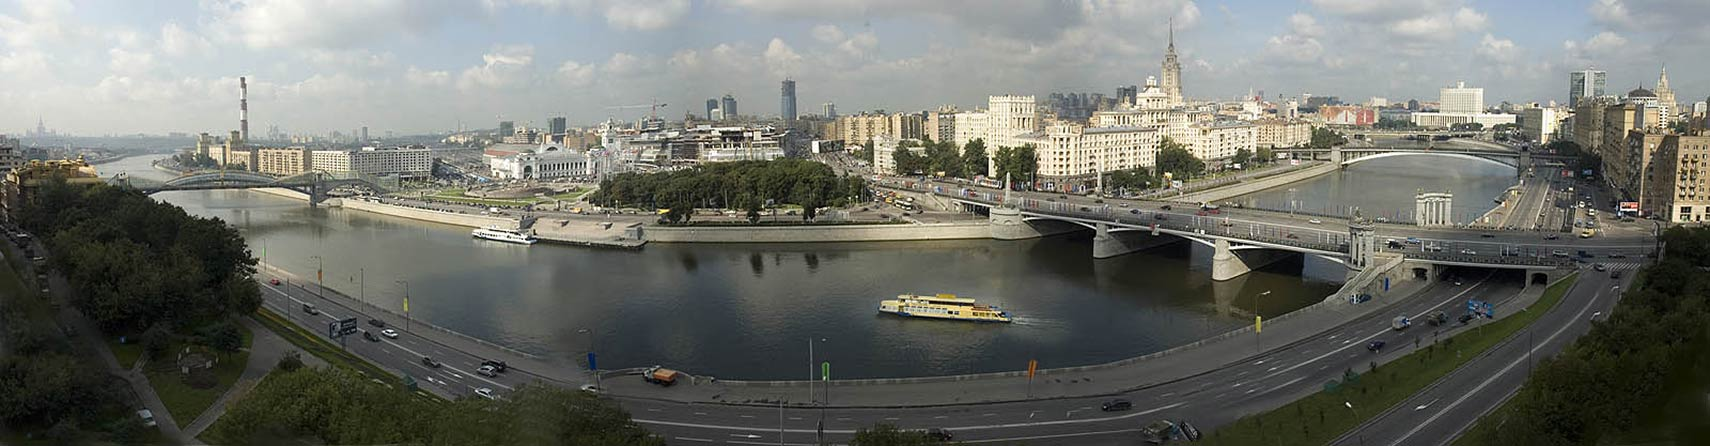 Moscow Panorama with Moskva River and Square of Europe